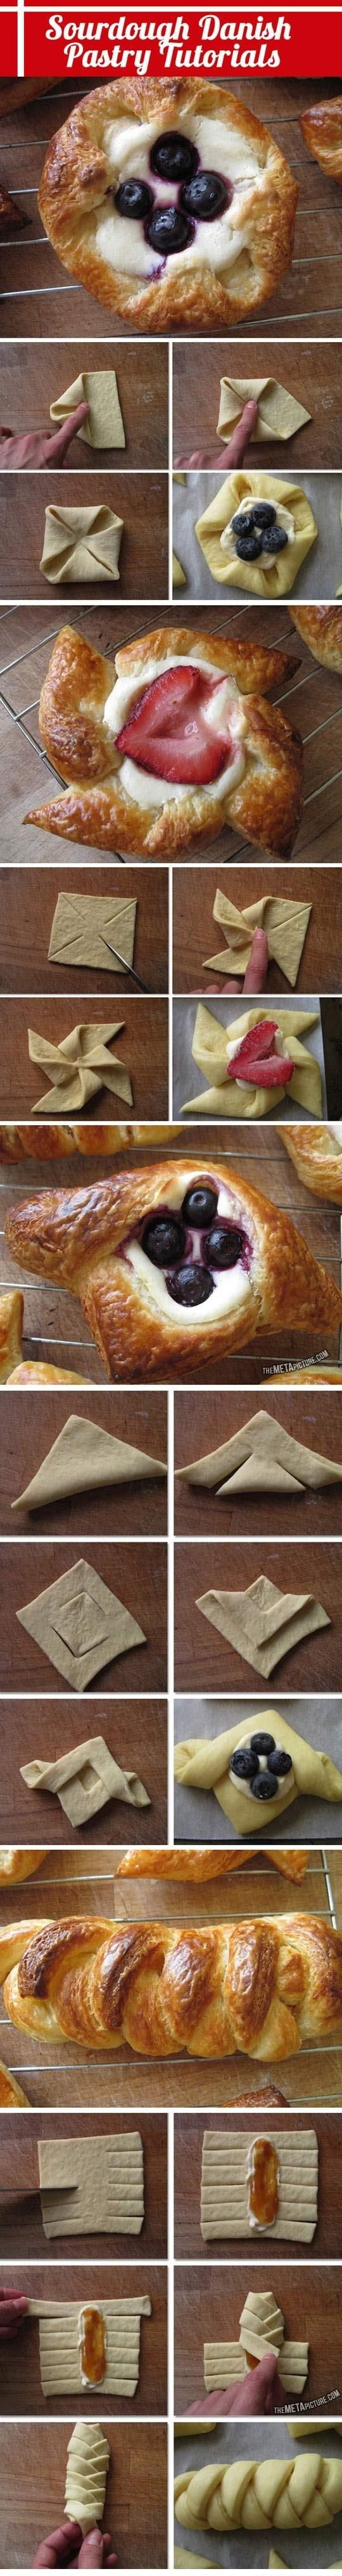 How to do pastry right